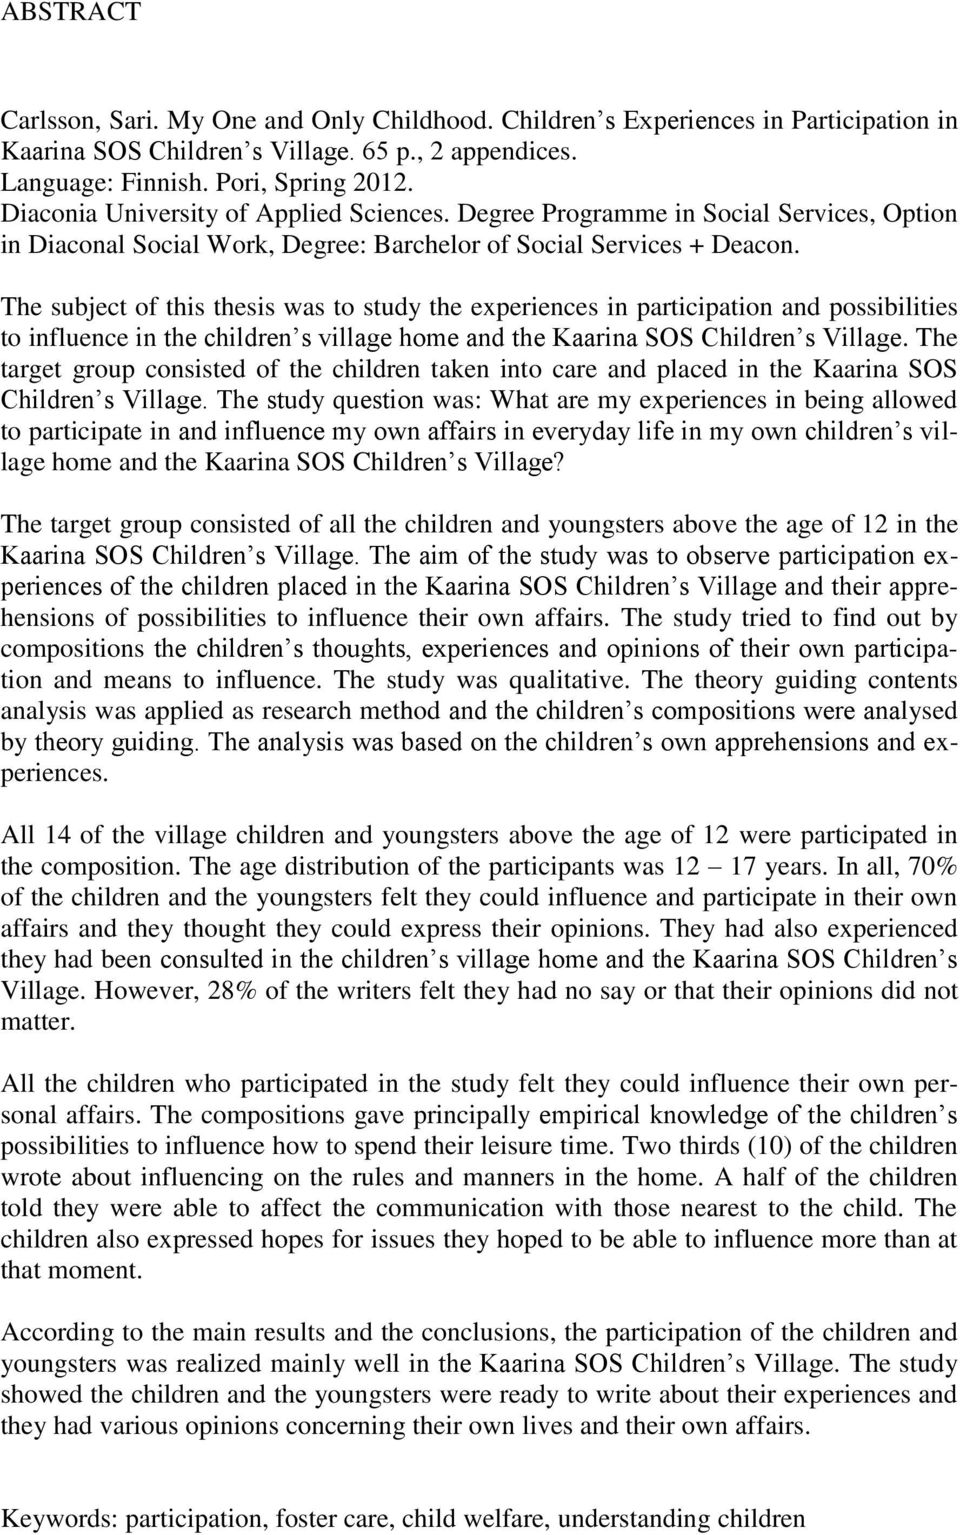 The subject of this thesis was to study the experiences in participation and possibilities to influence in the children s village home and the Kaarina SOS Children s Village.